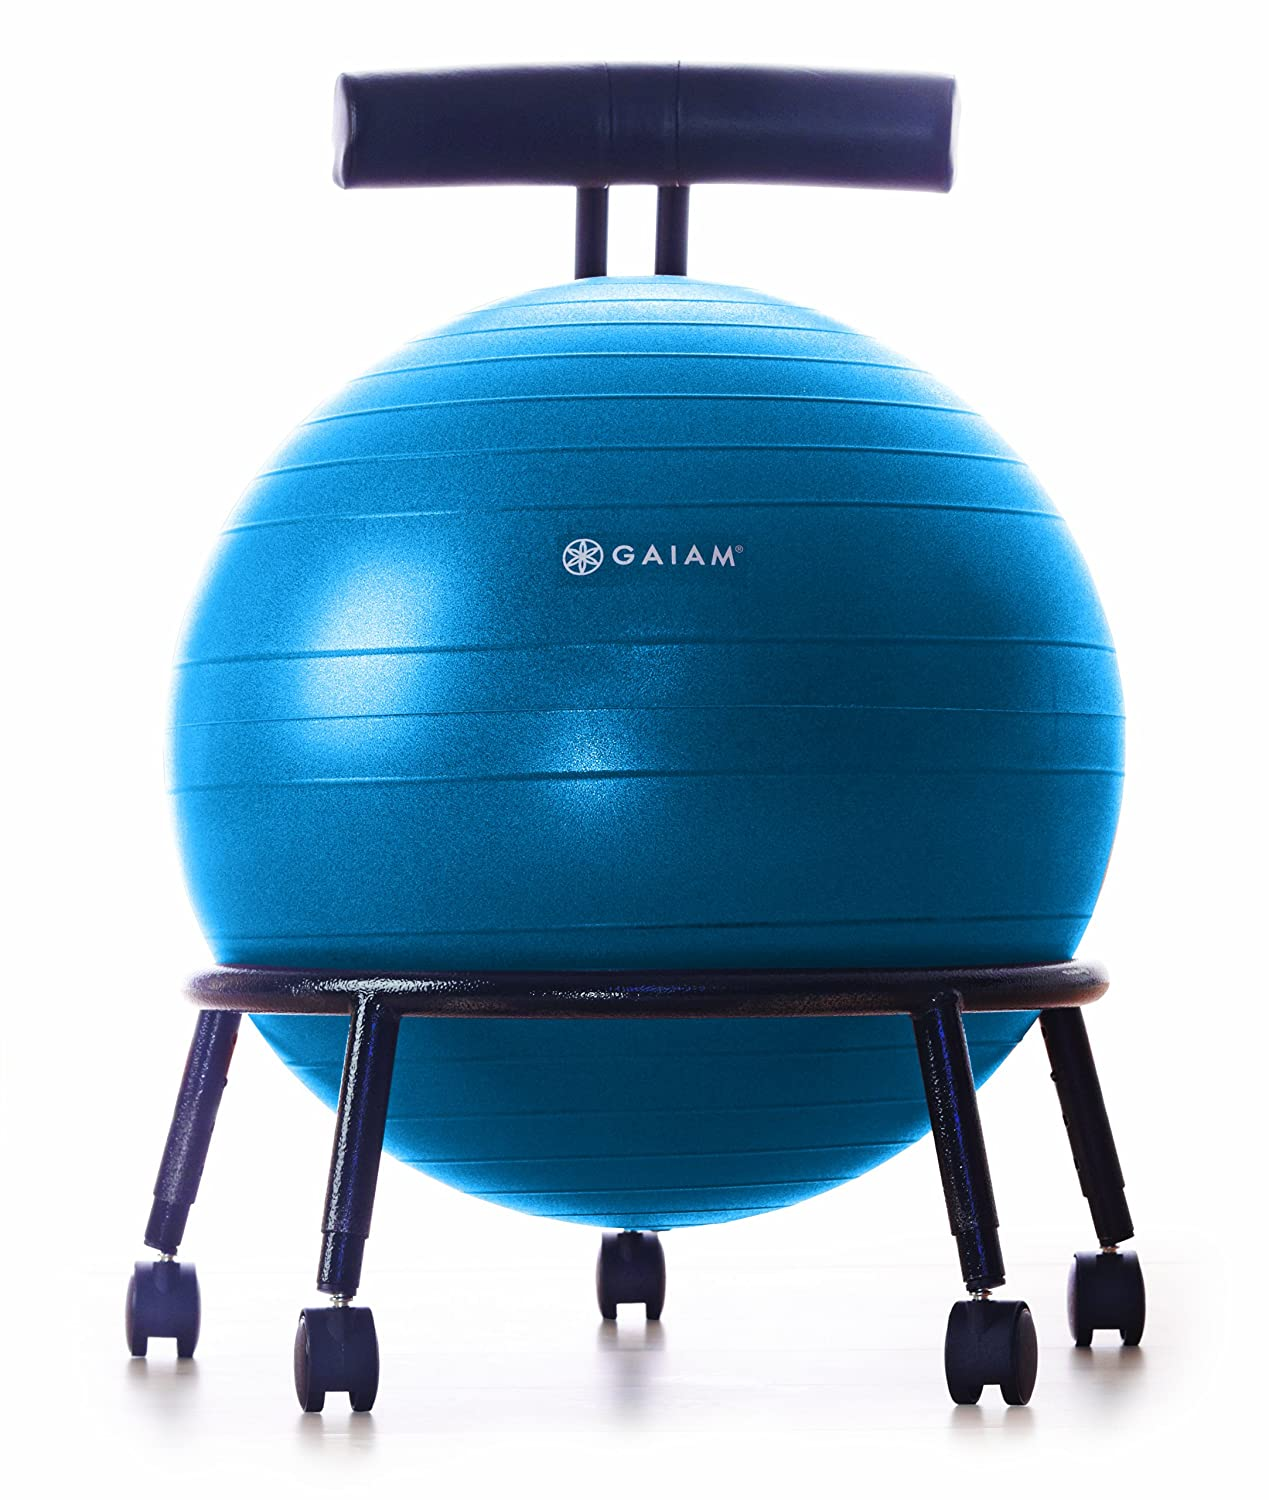 NEW Balance Ball Workout Chair Ergonomic Adjustable Desk